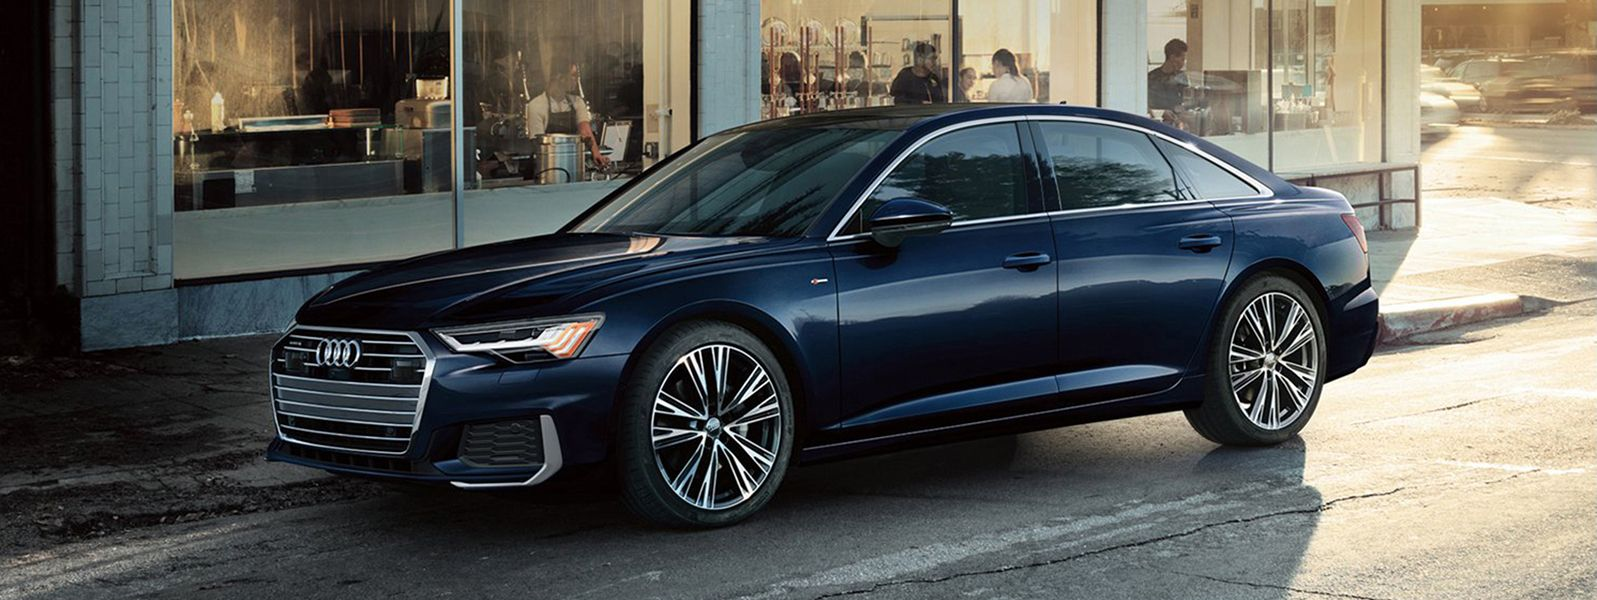 hight resolution of now that we ve tallied the results the clear winner of this midsize luxury sedan comparison is the all new 2019 audi a6 both the bmw 5 series and